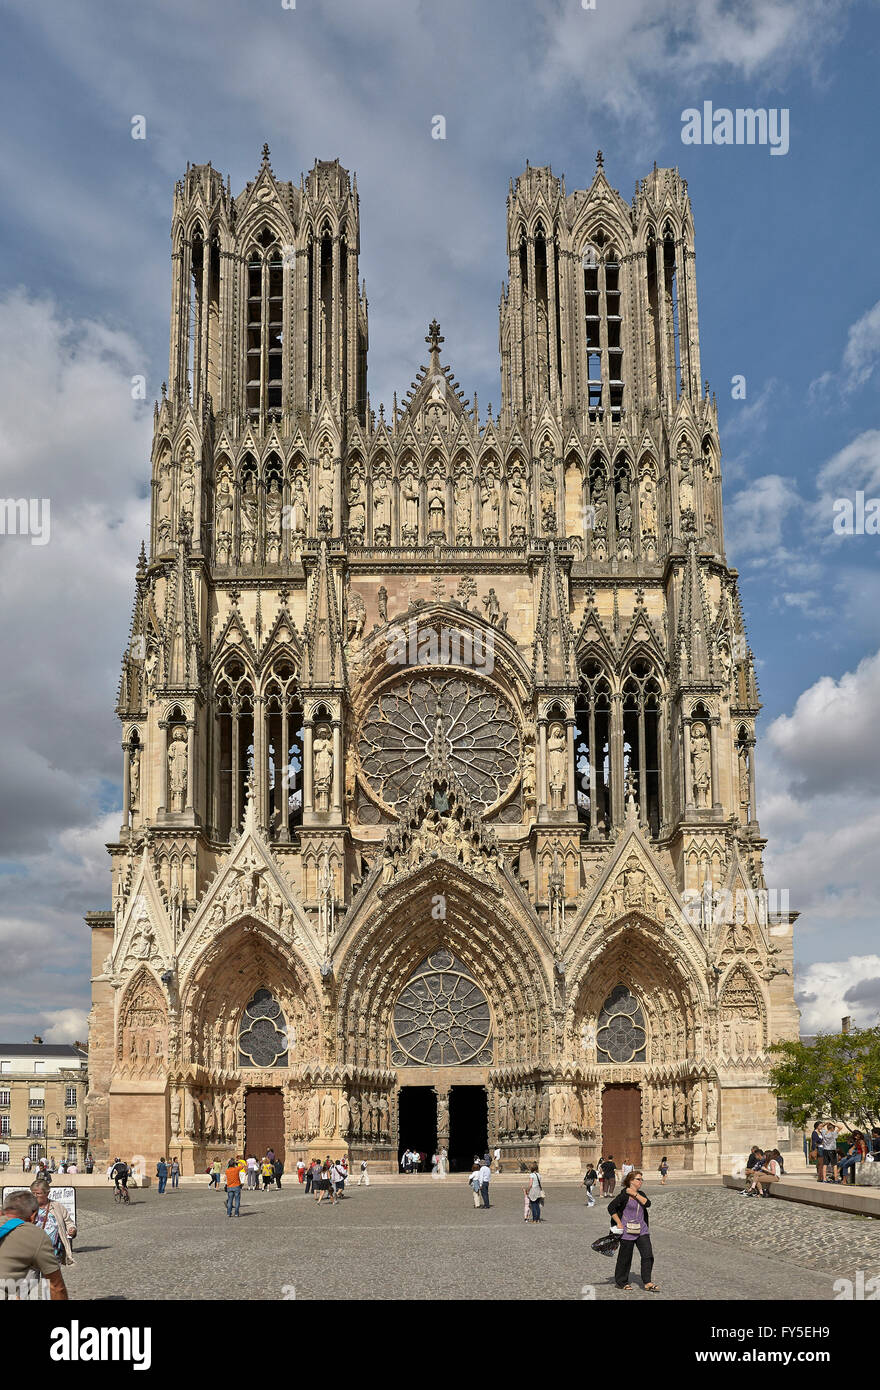 west front of the cathedral of our lady reims champagne france stock photo 102768773 alamy. Black Bedroom Furniture Sets. Home Design Ideas